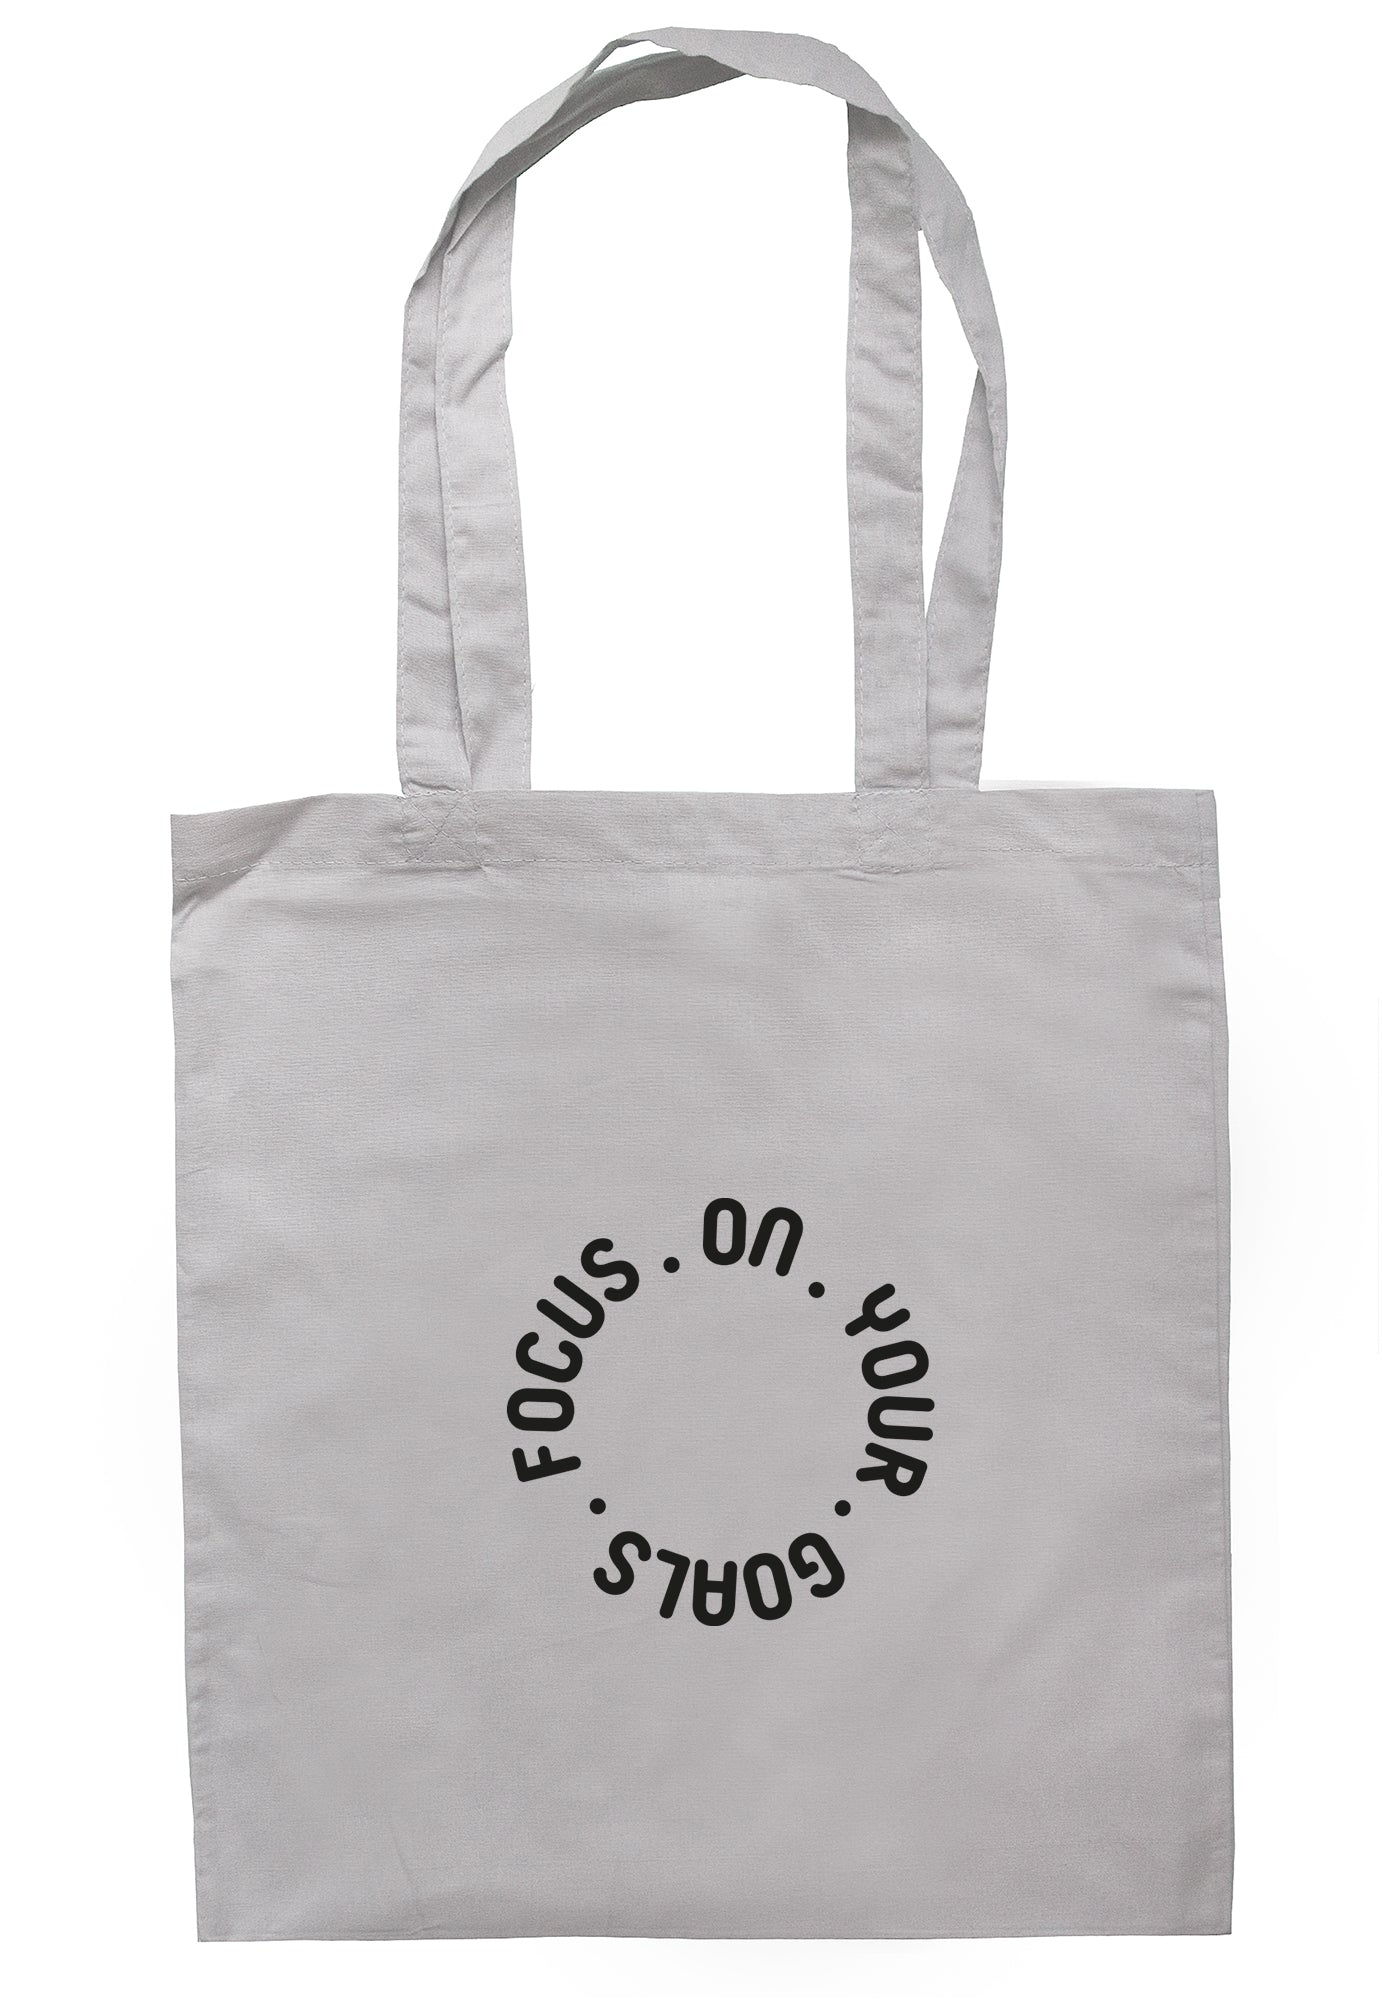 Focus On Your Goals Tote Bag S1174 - Illustrated Identity Ltd.